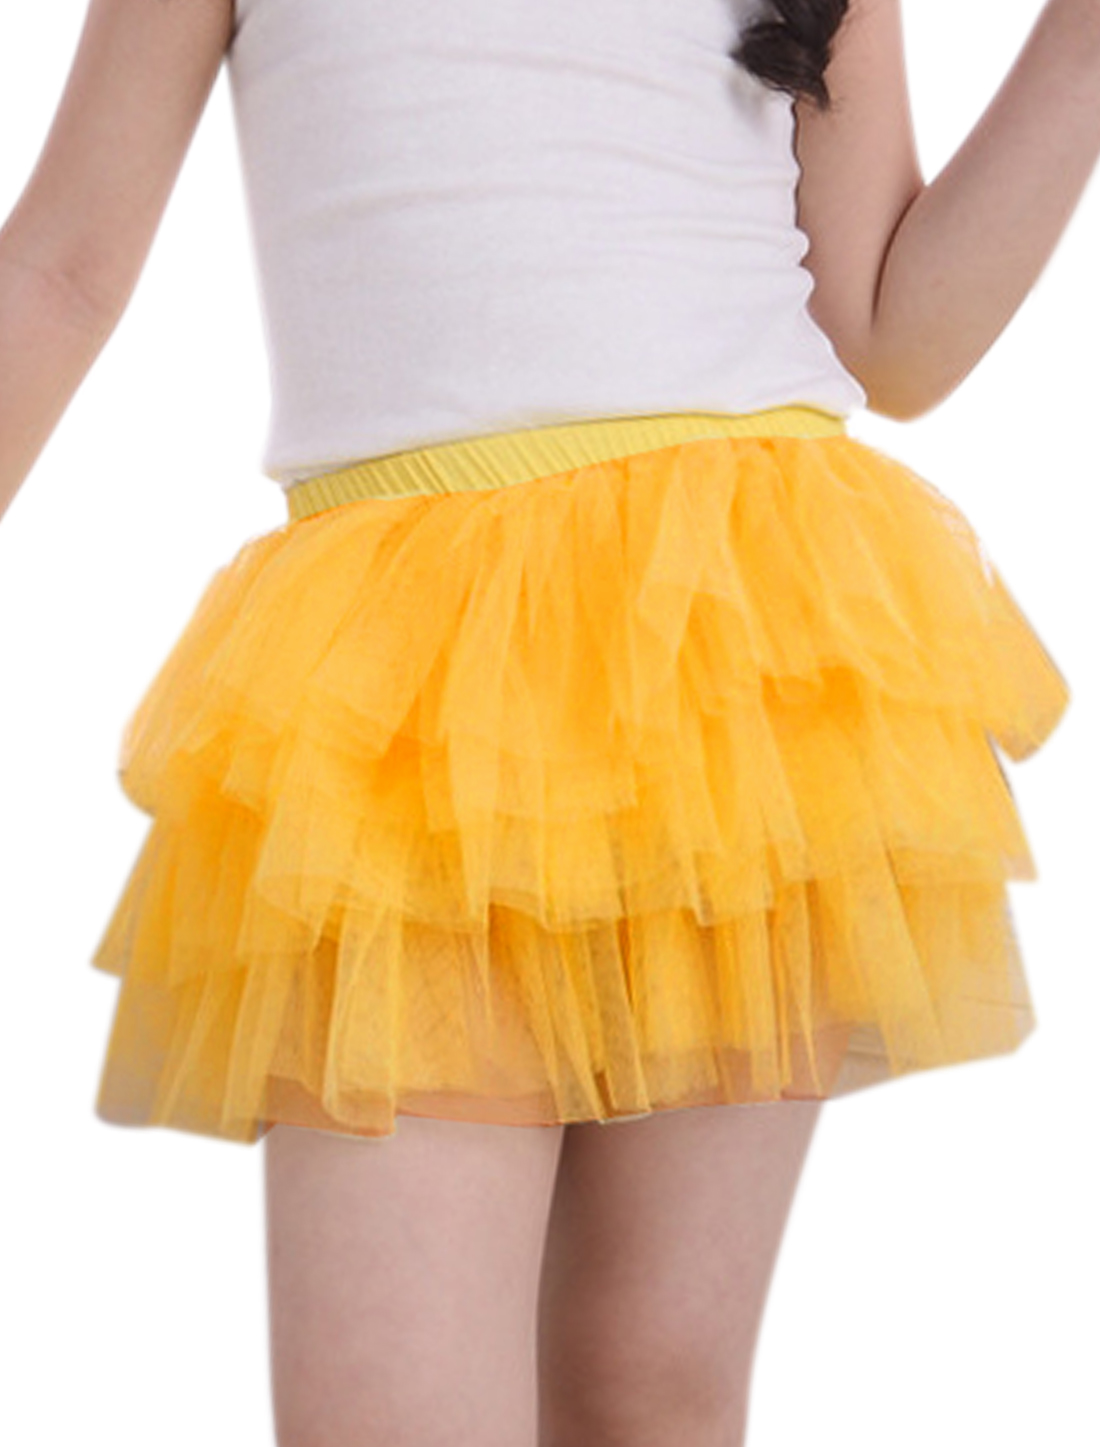 Girls Elastic Waist Mesh Panel Tiered A Line Skirt Yellow 6X